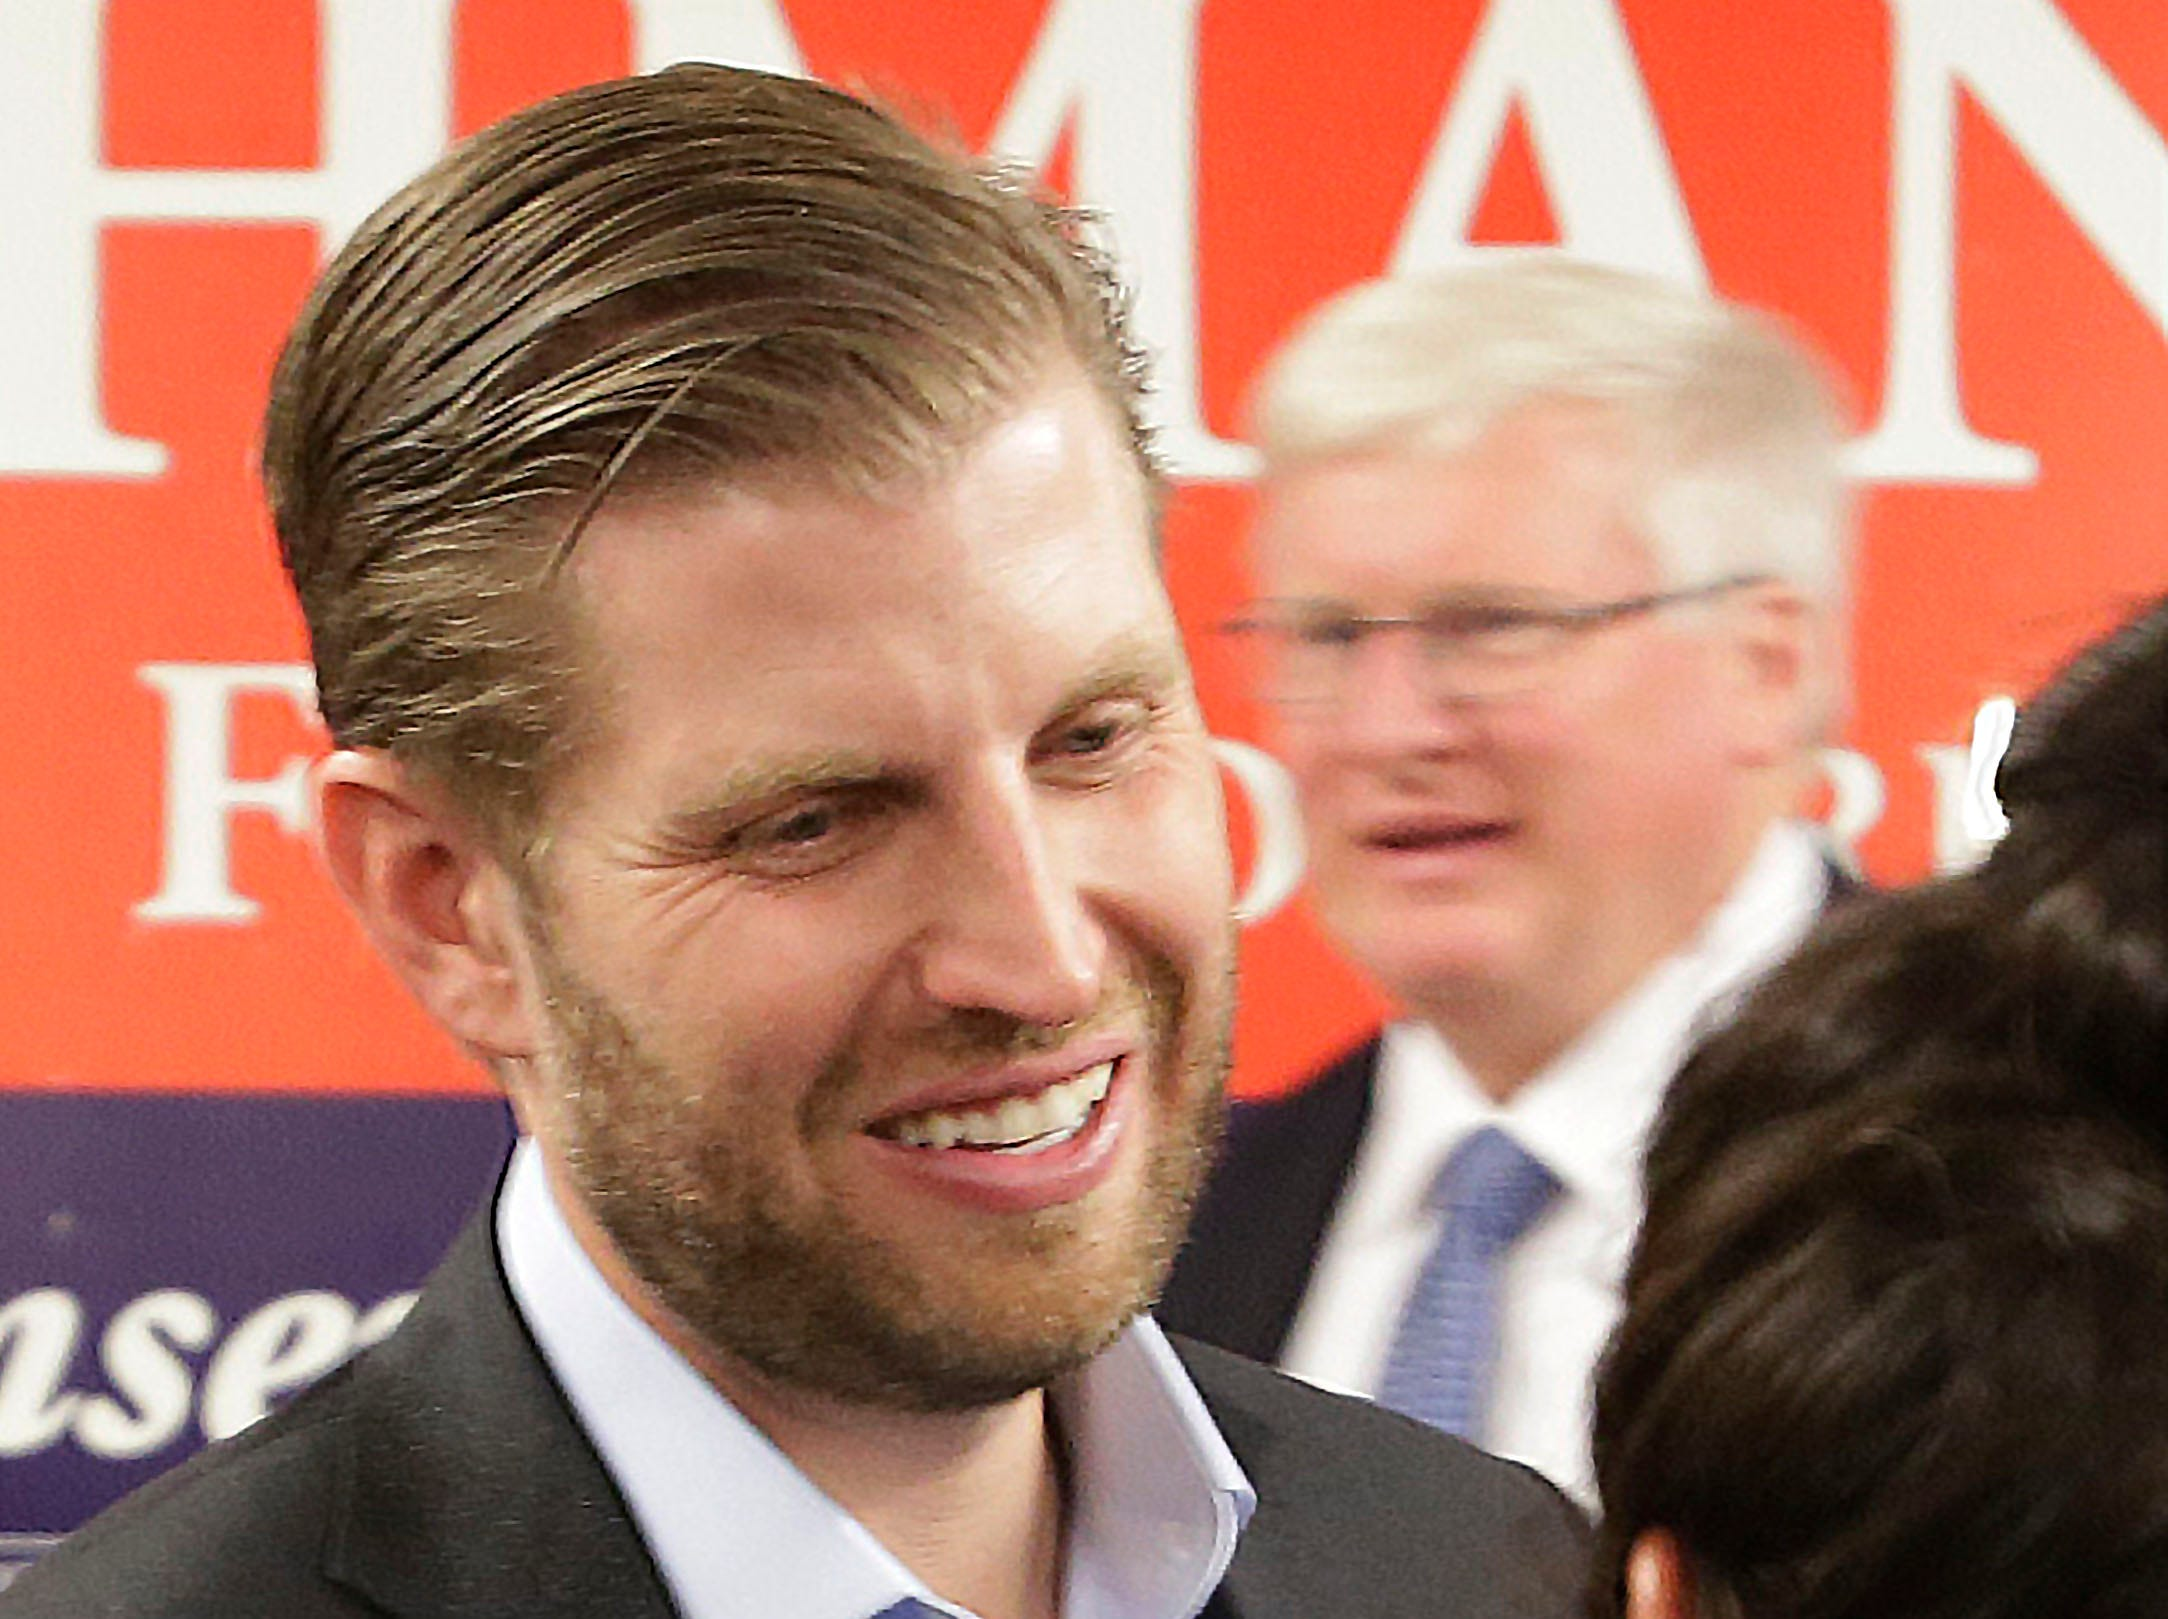 Eric Trump smiles while speaking to a Republican supporter as U.S. Representative Glenn Grothman, right, walks in the background during a campaign rally at the GOP Headquarters, Tuesday, October 30, 2018, in Sheboygan, Wis.  Trump was in Sheboygan to rally support for Wisconsin Republicans.